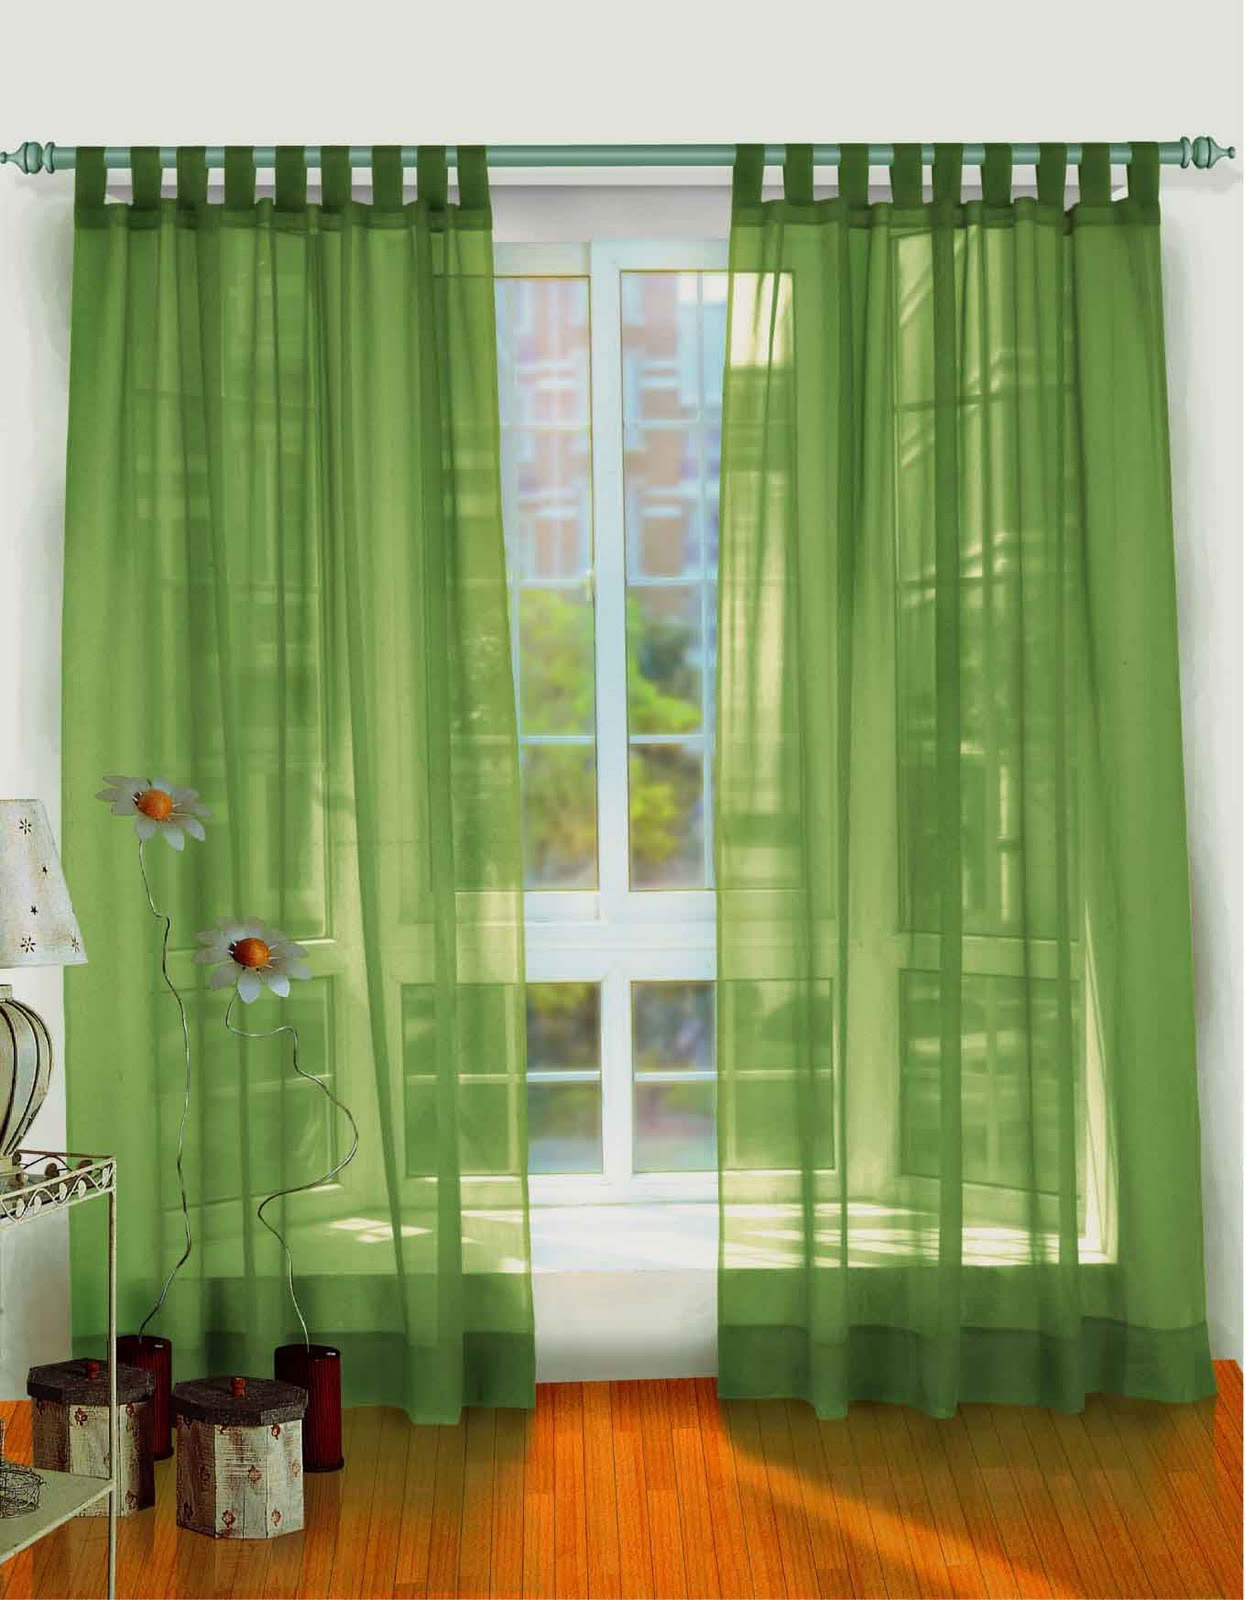 Modern furniture living room curtains ideas 2011 - Living room curtain ideas ...